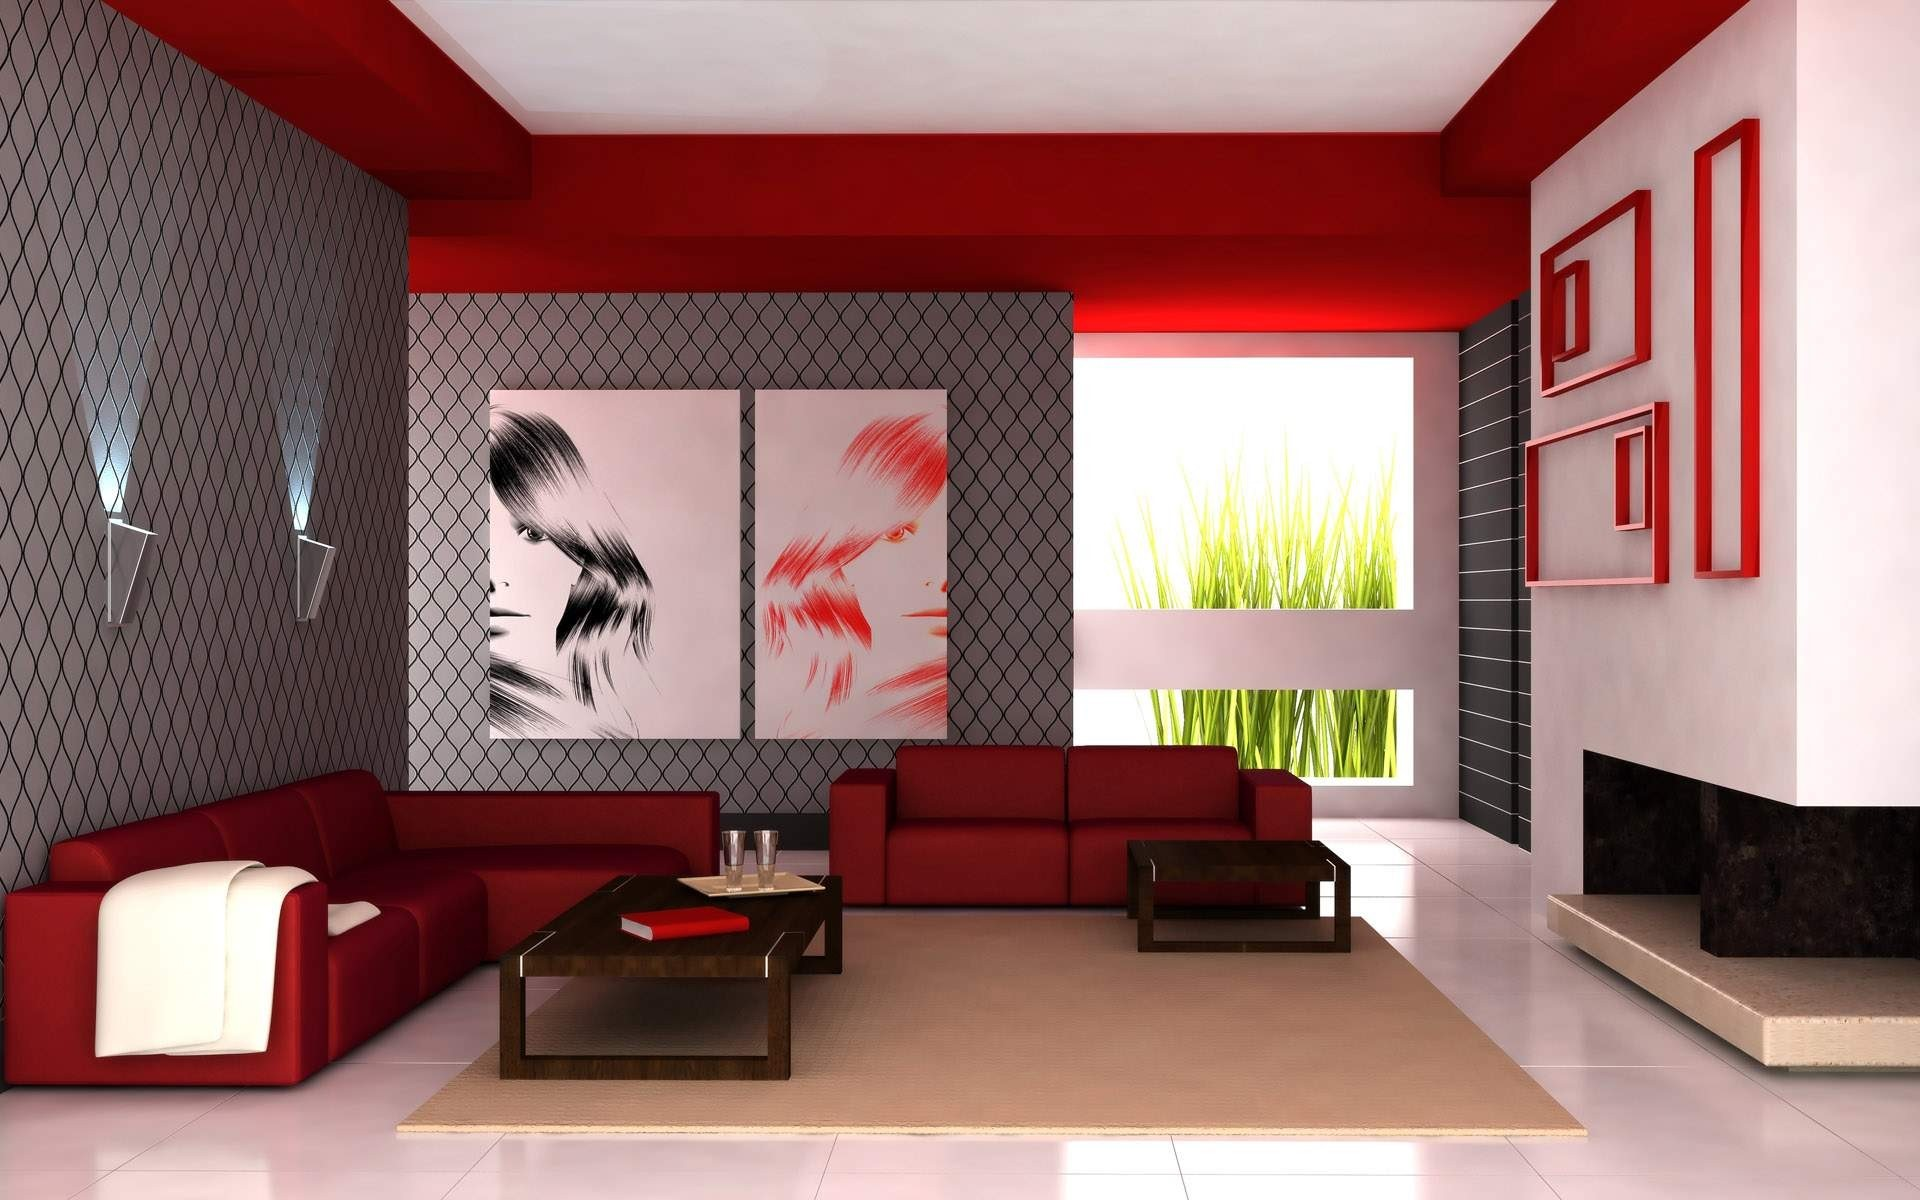 Red Interior Design Decorating Room HD Wallpapers 1920x1200